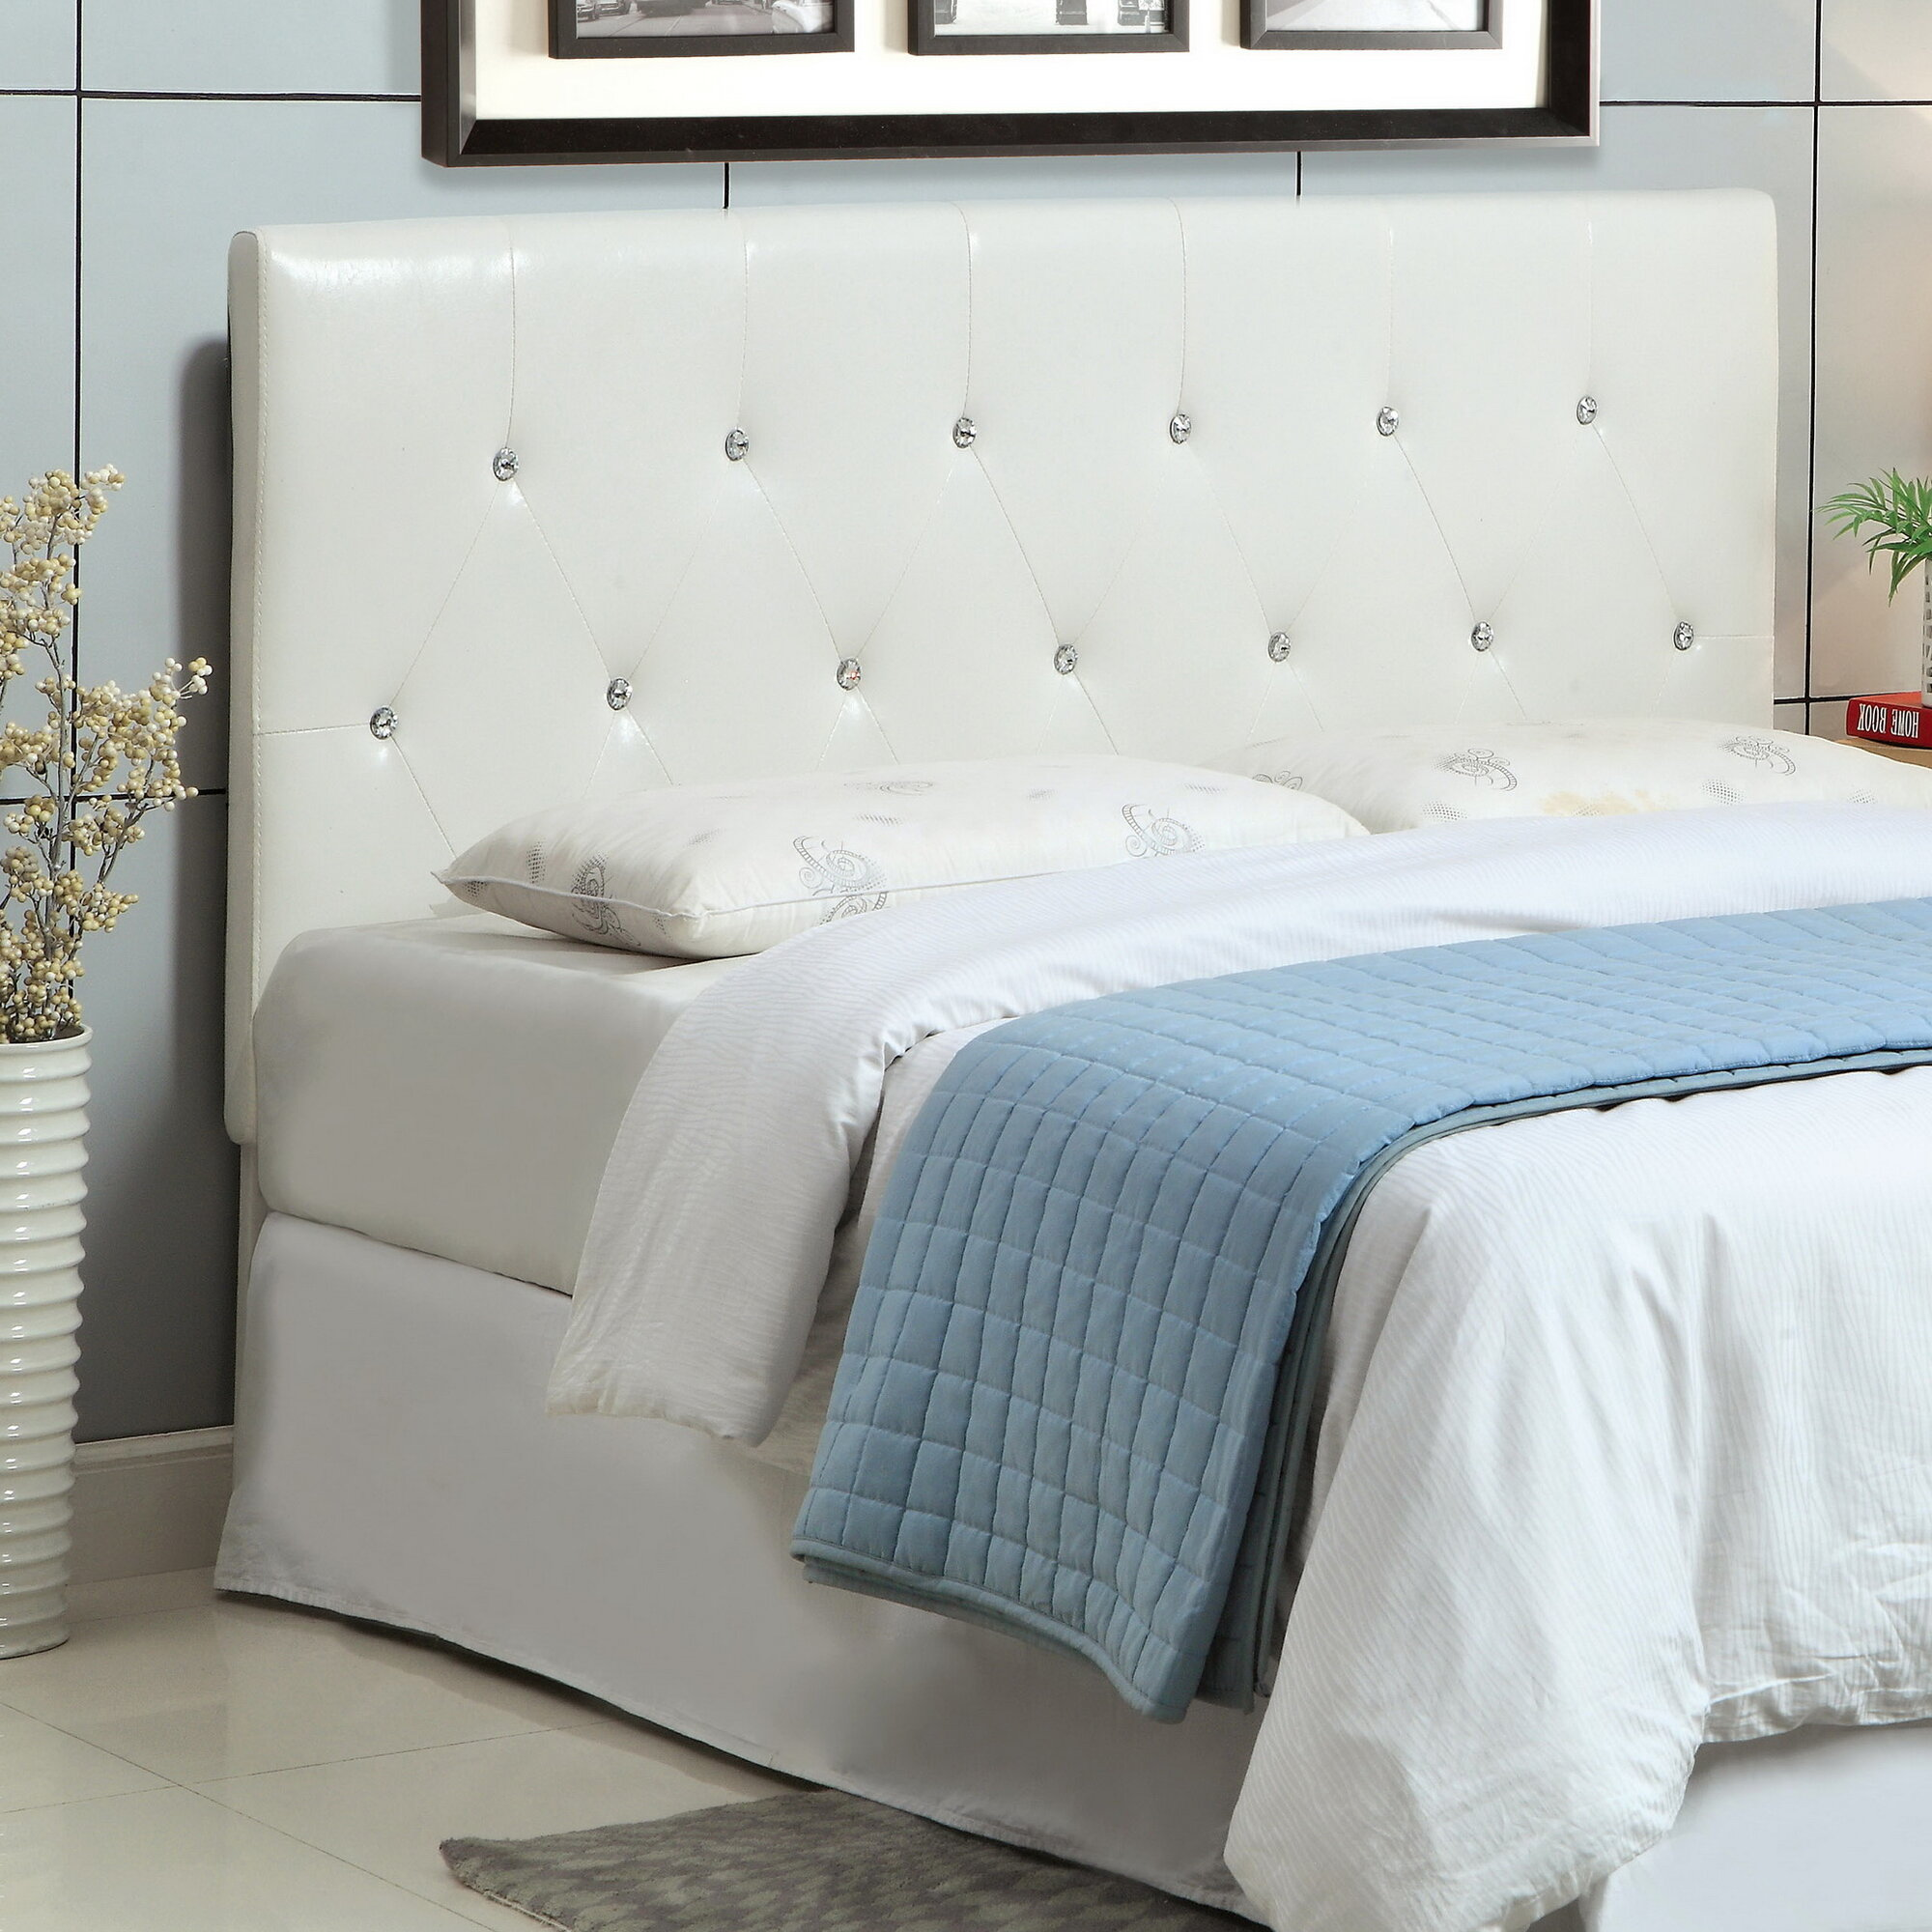 Hokku Designs Jermaine Upholstered Headboard Ebay